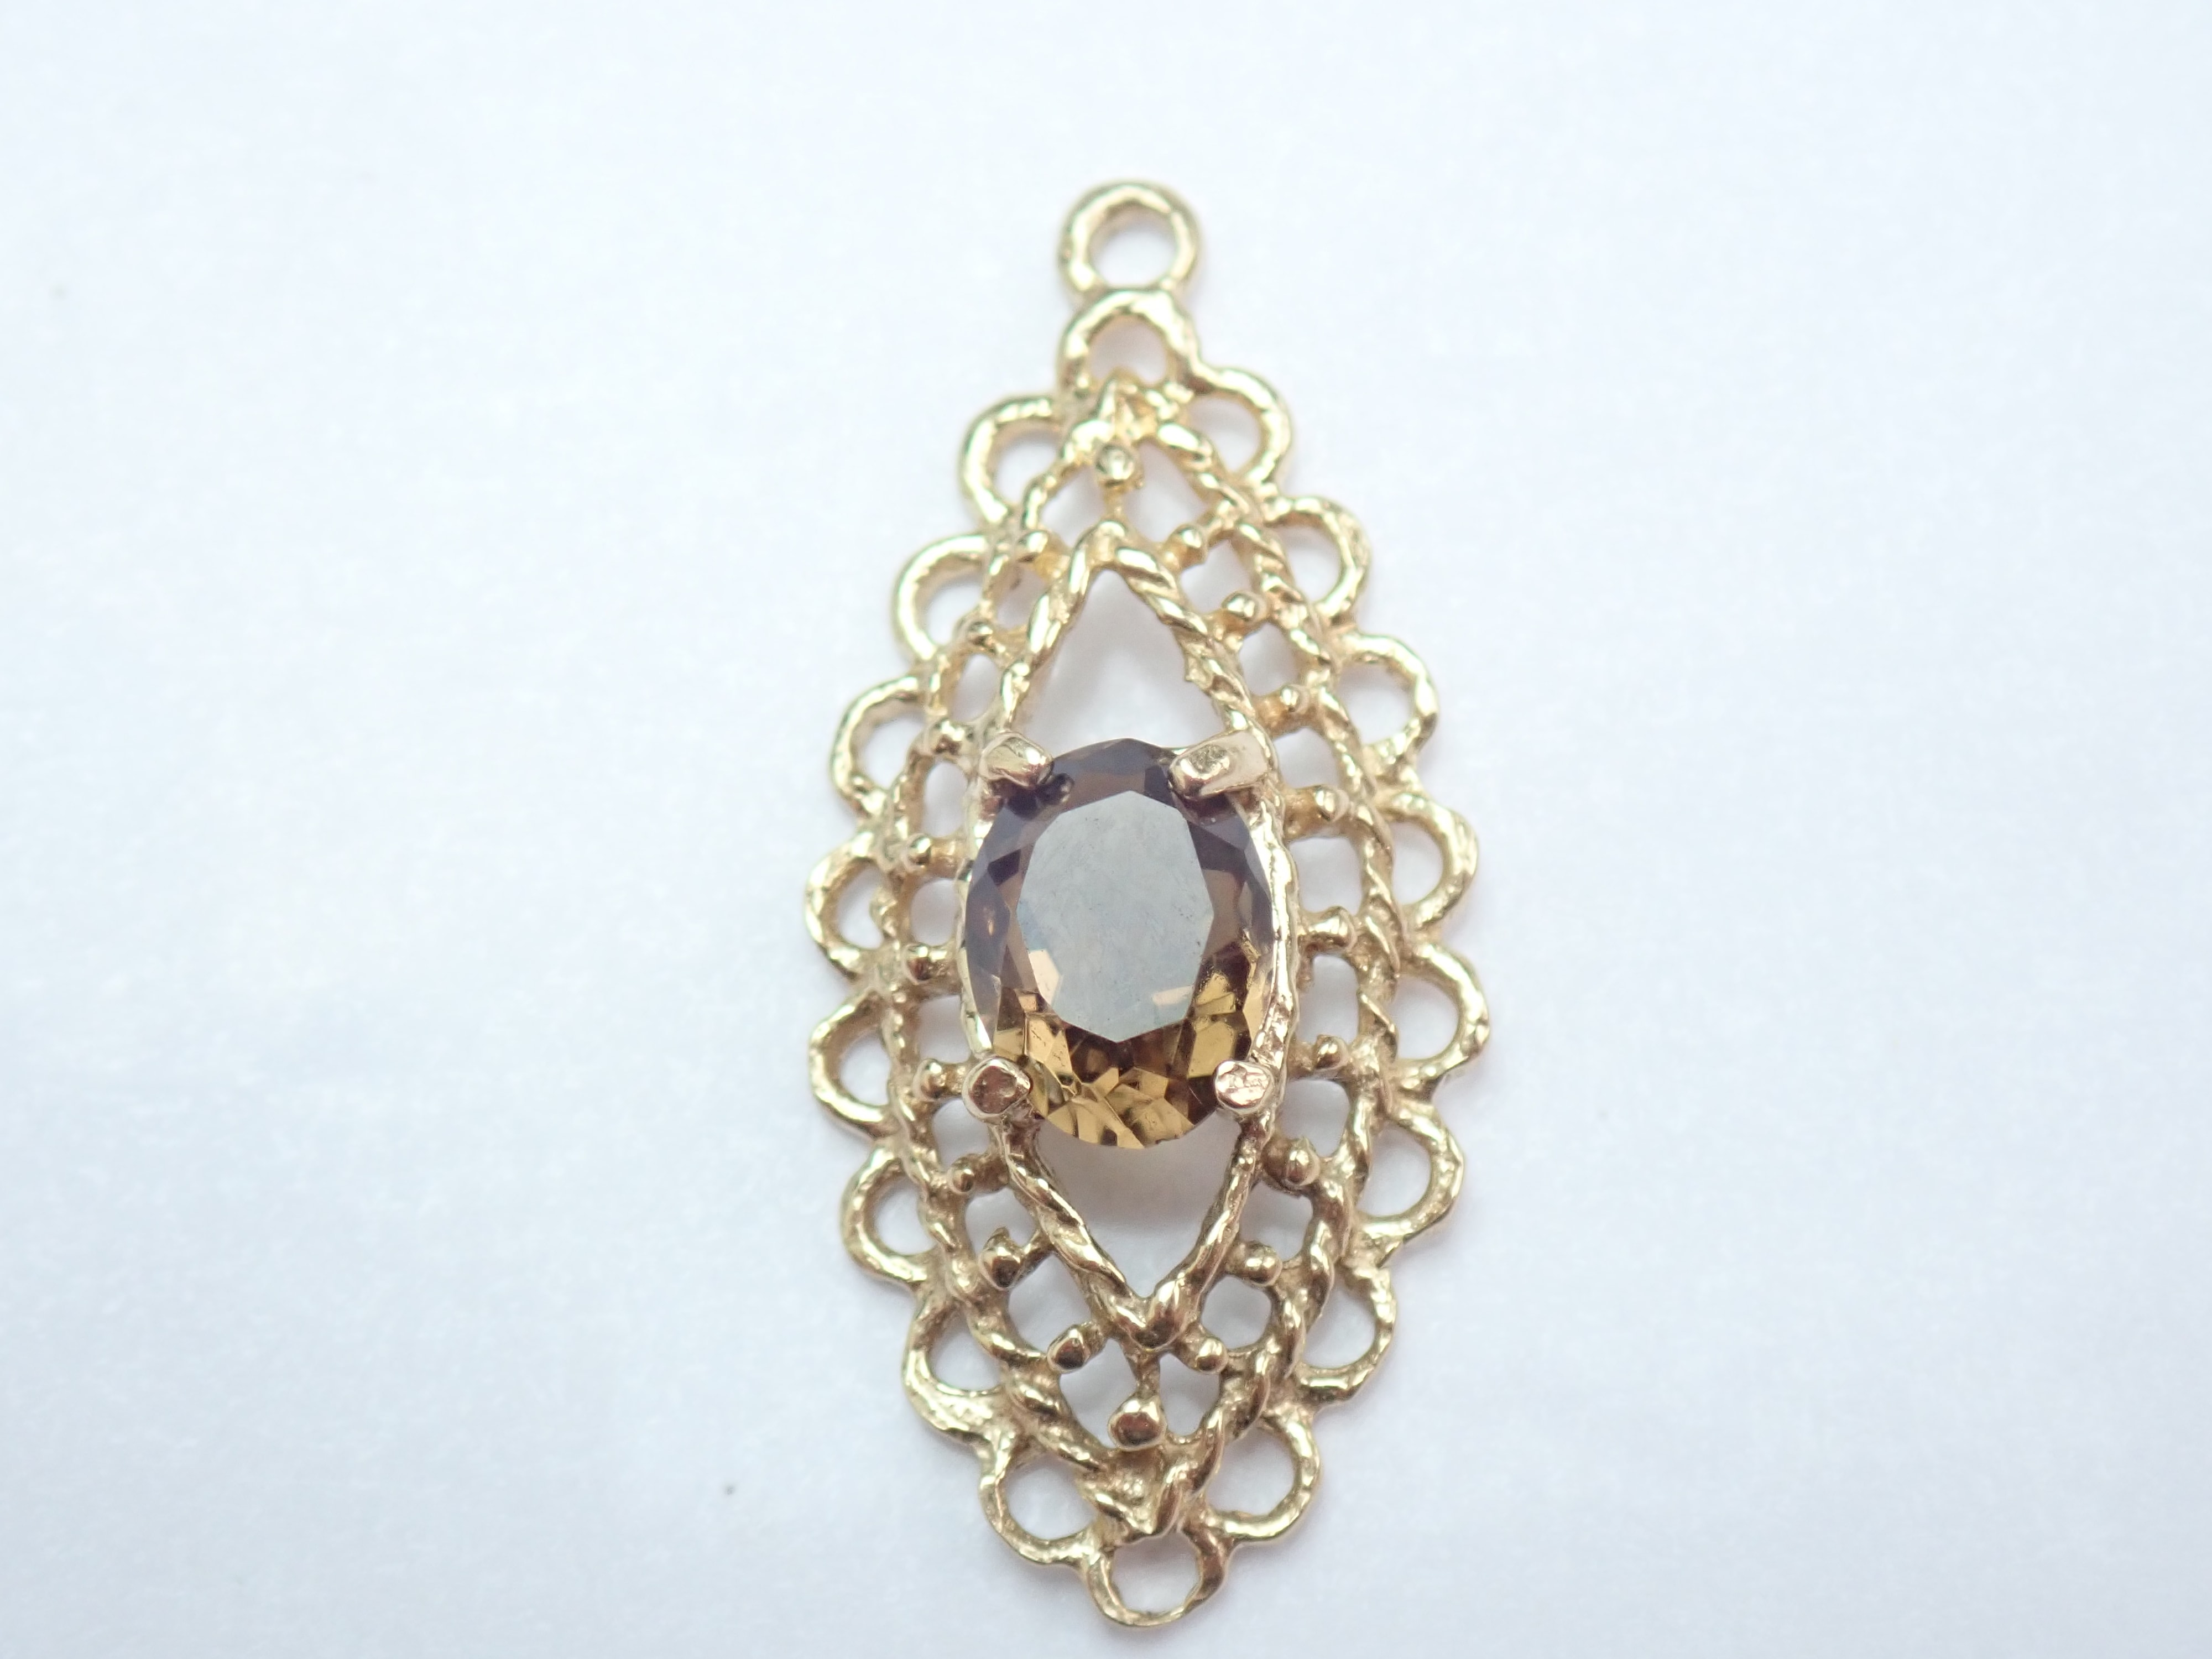 375 Yellow Gold 0.50ct Oval Citrine Scroll Design Pendant -1.22gms #24